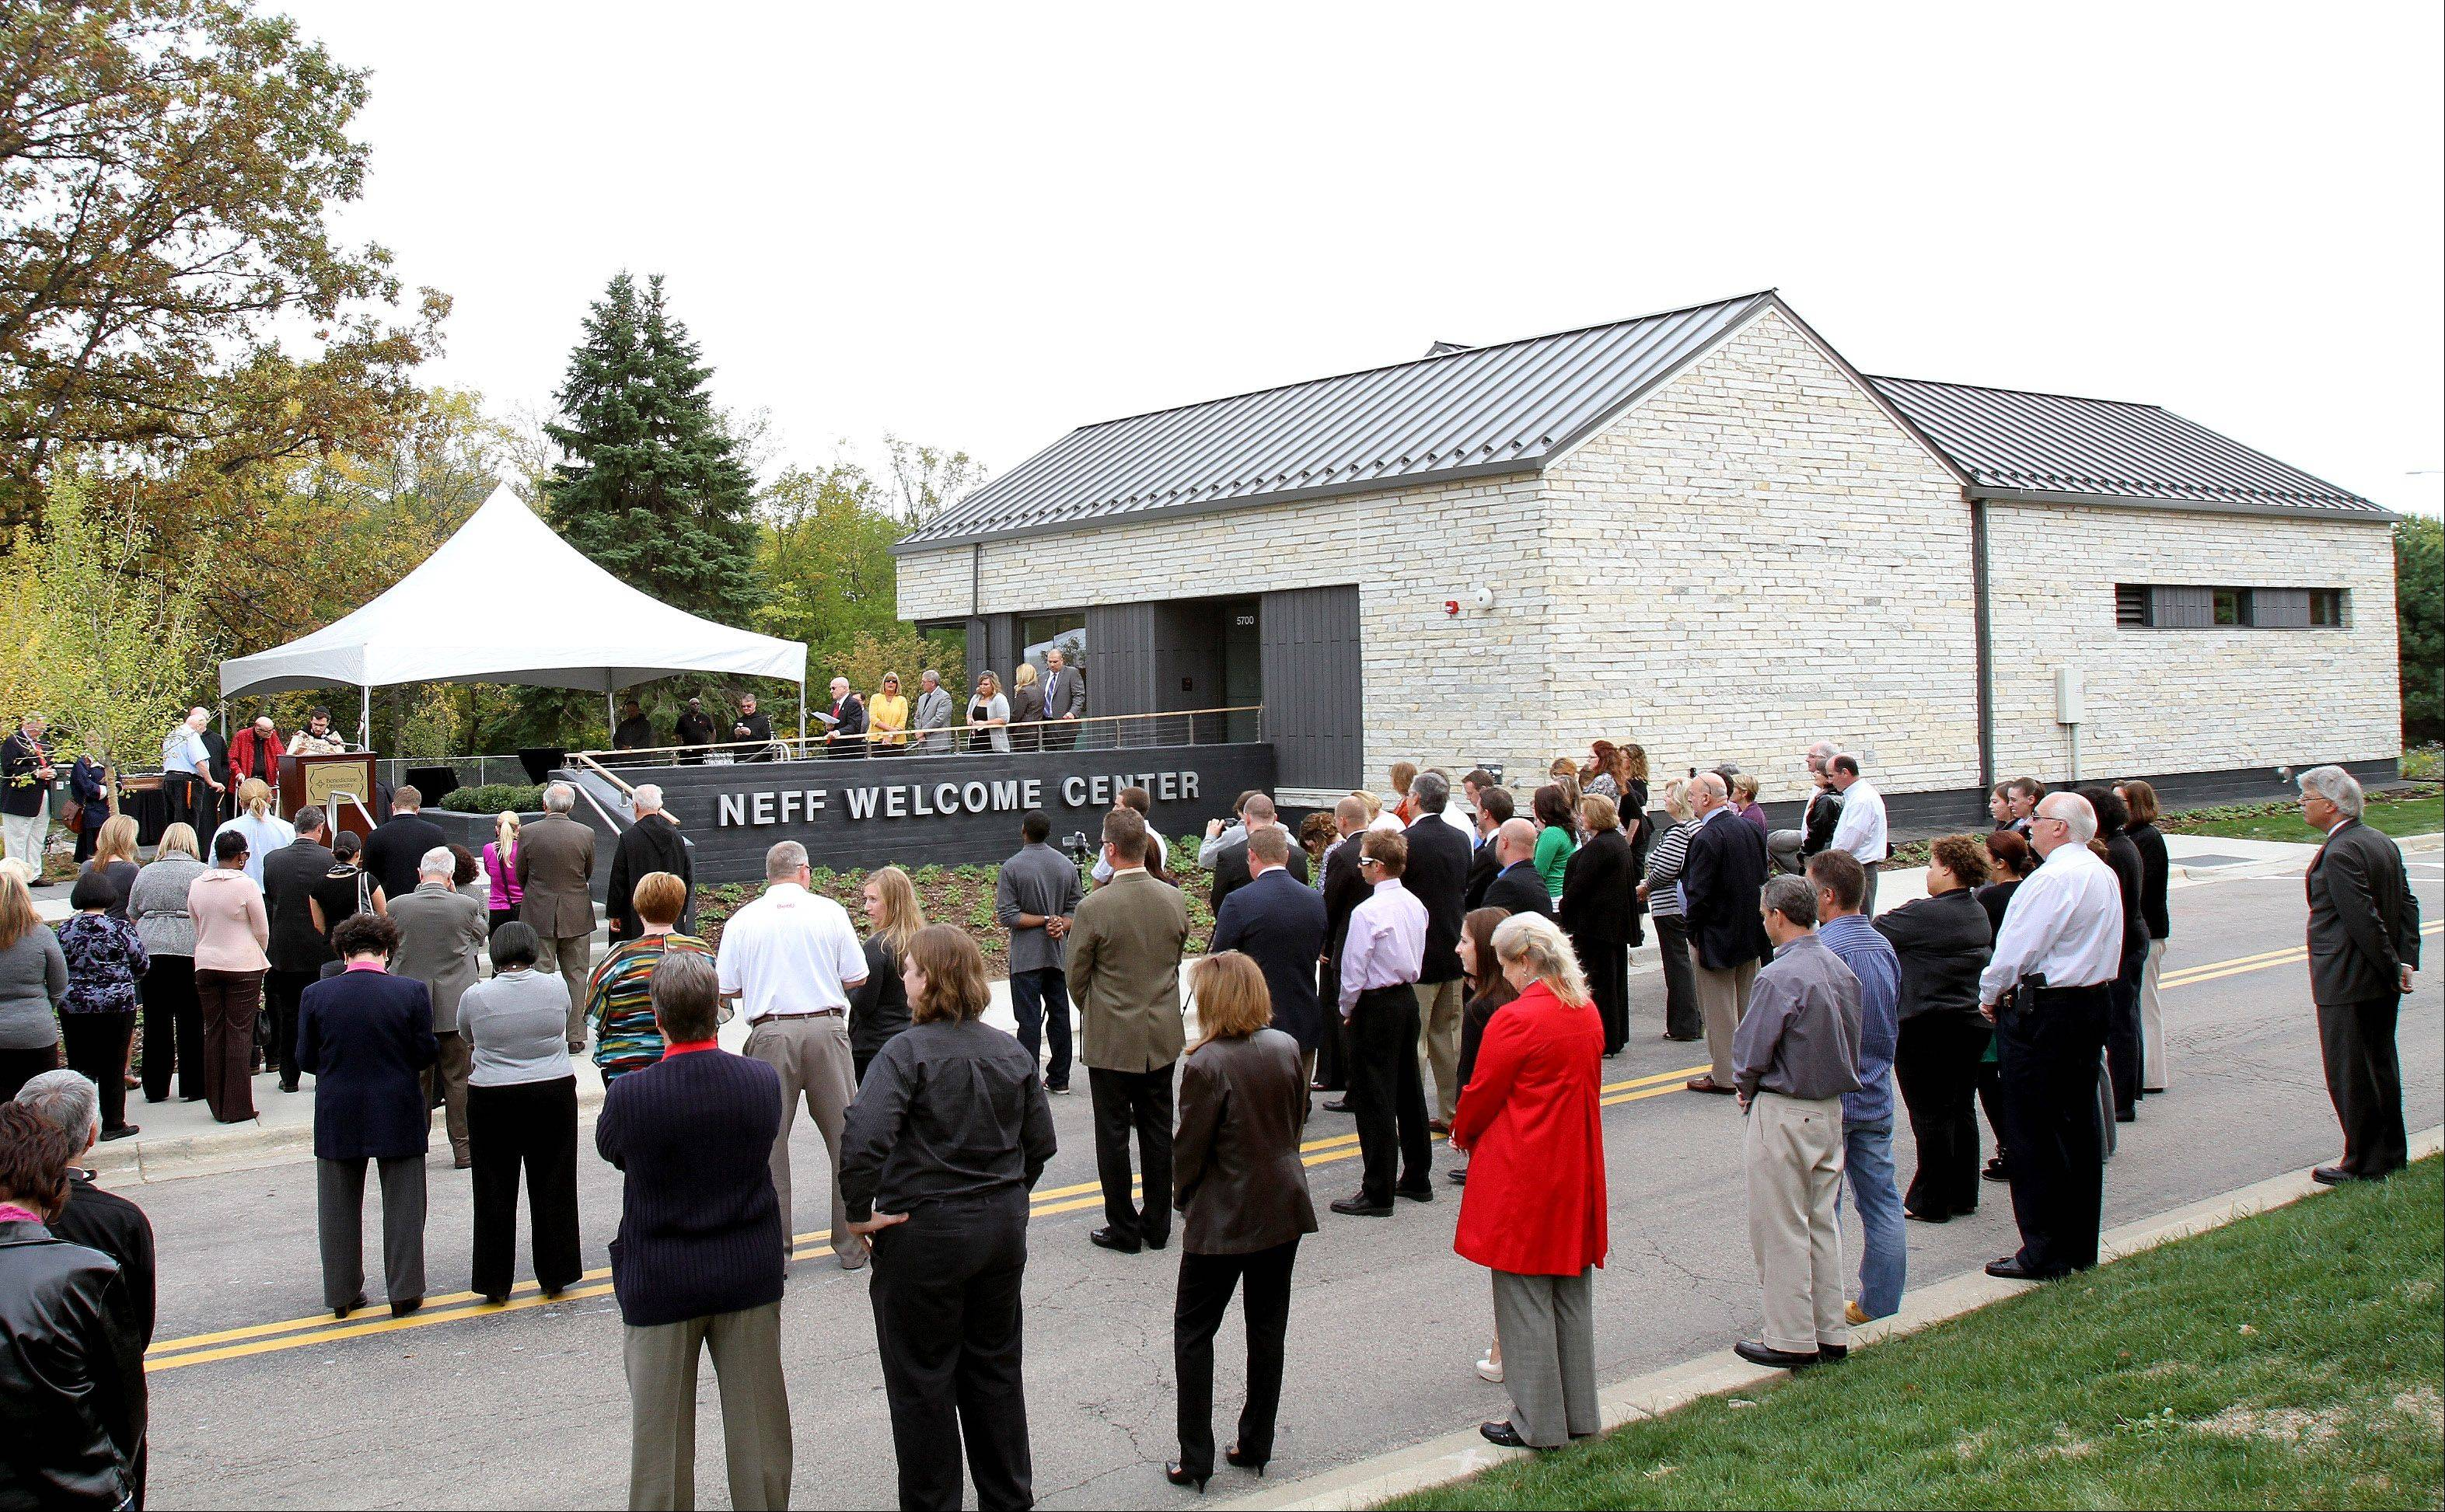 The Neff Welcome Center at Benedictine University in Lisle was unveiled in a ceremony and dedication earlier this month and stands ready to greet students, visitors and alumni.